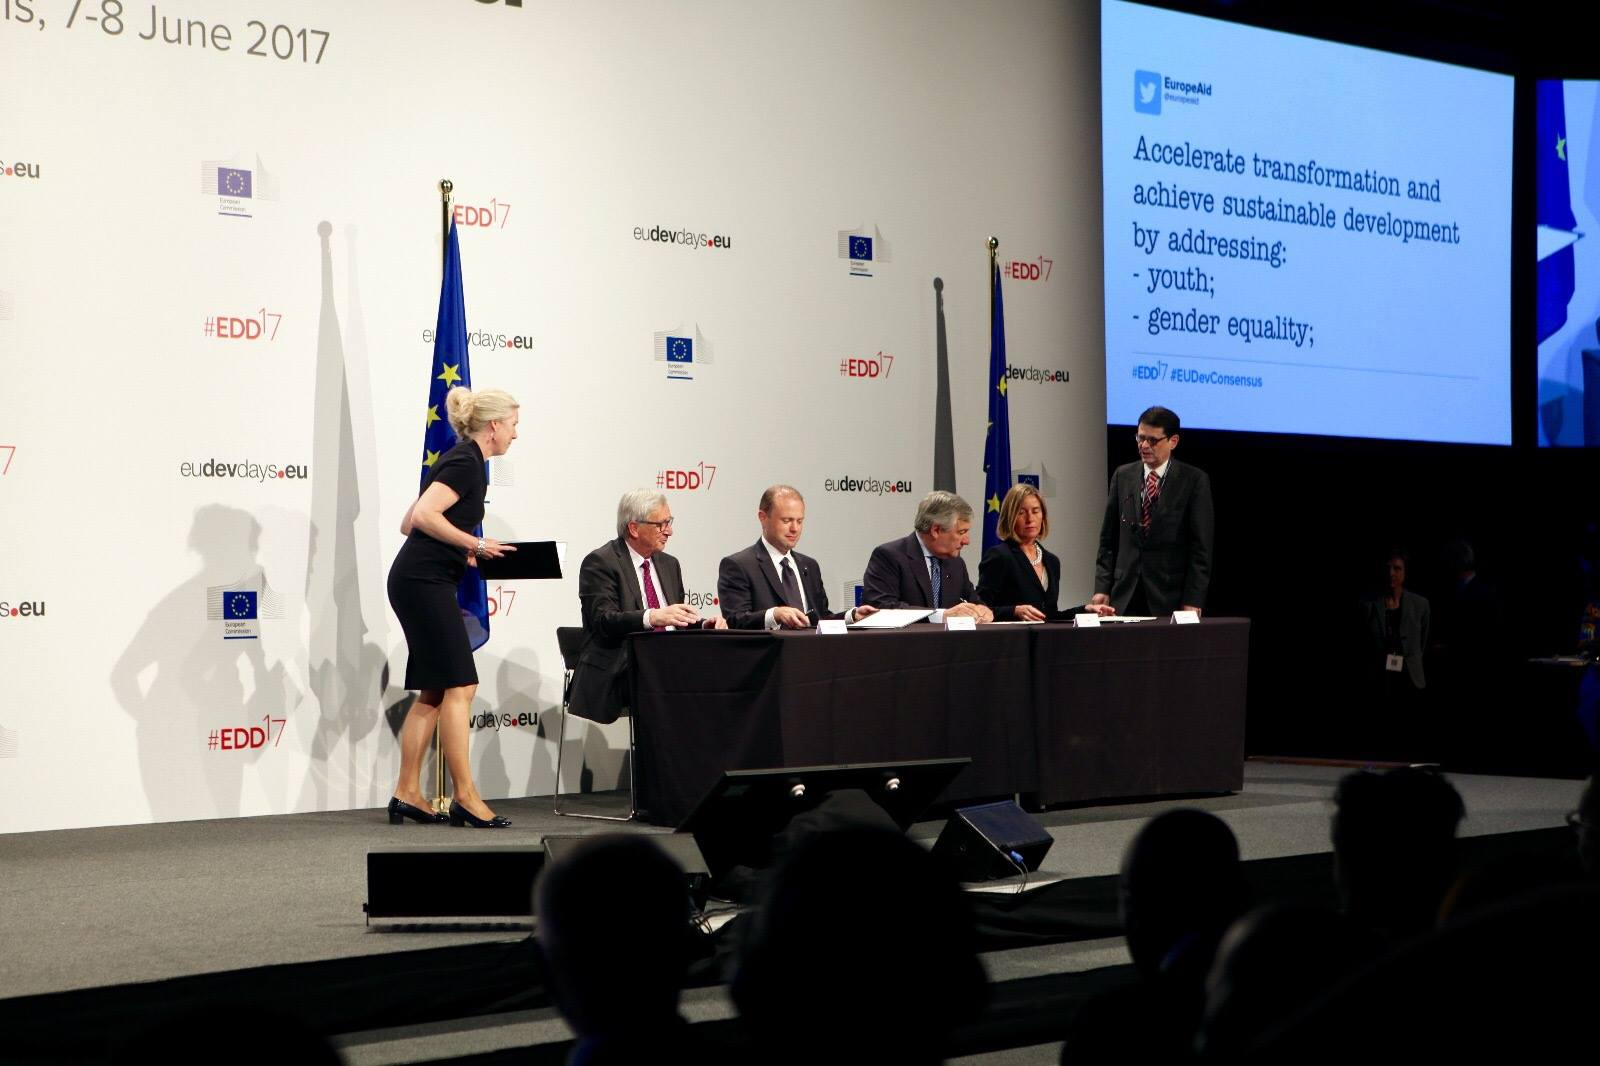 Moving forward - European Consensus on Development